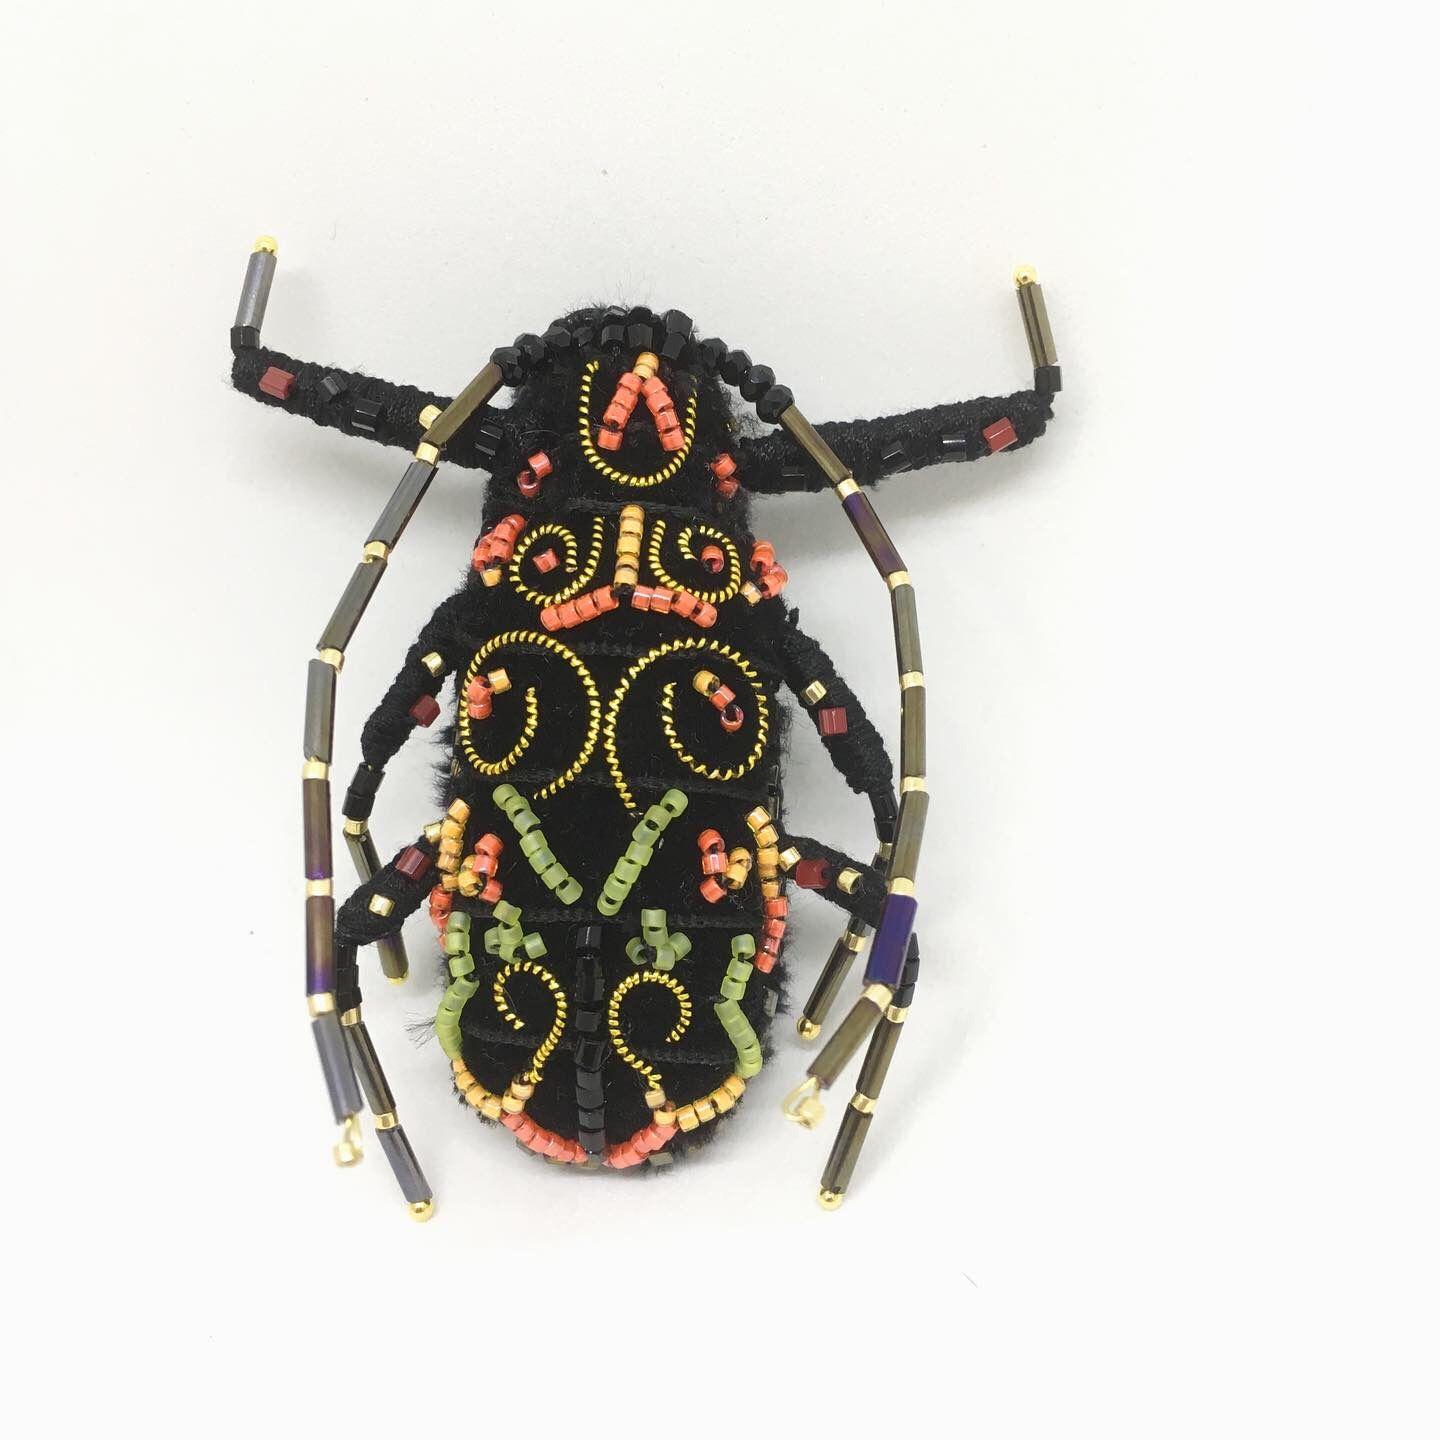 Flys embroidery brooches Insect brooch Goldwork handembroidery brooch Brooches for sister Couple brooches Christmas sisters present